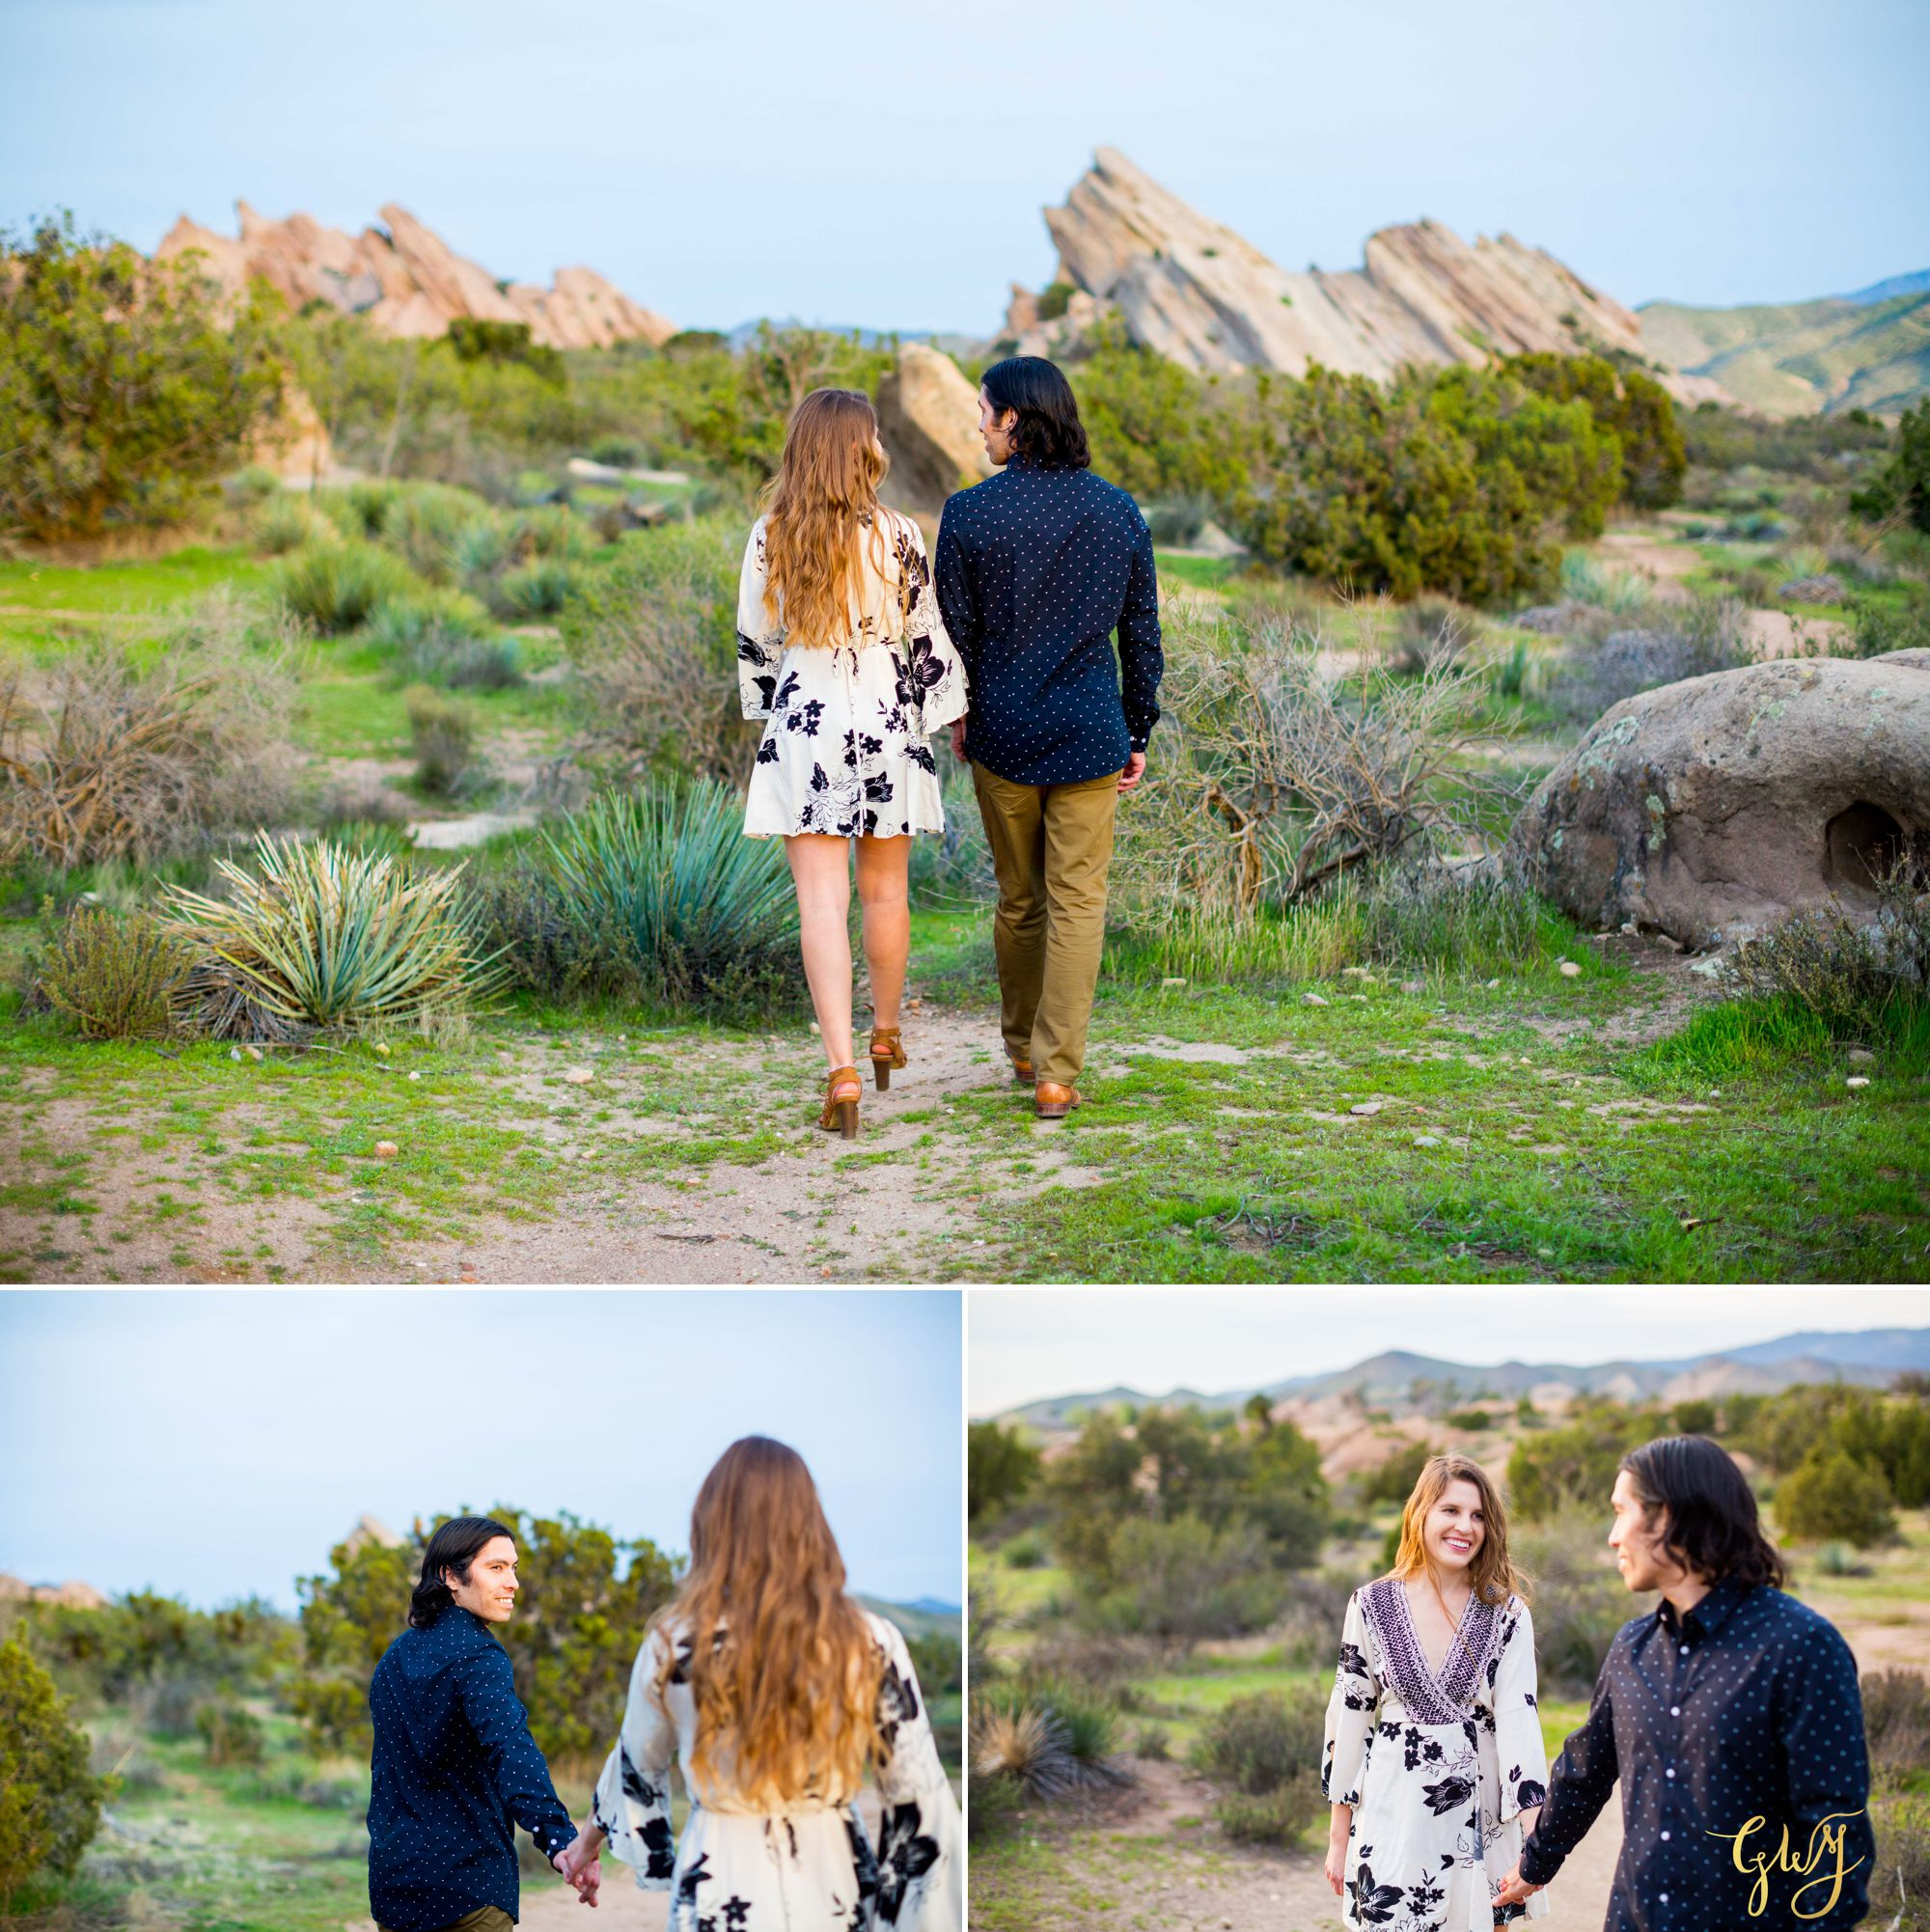 Jose + Sarah Vasquez Rocks Hike at Sunset Adventurous Engagement by Glass Woods Media 14.jpg